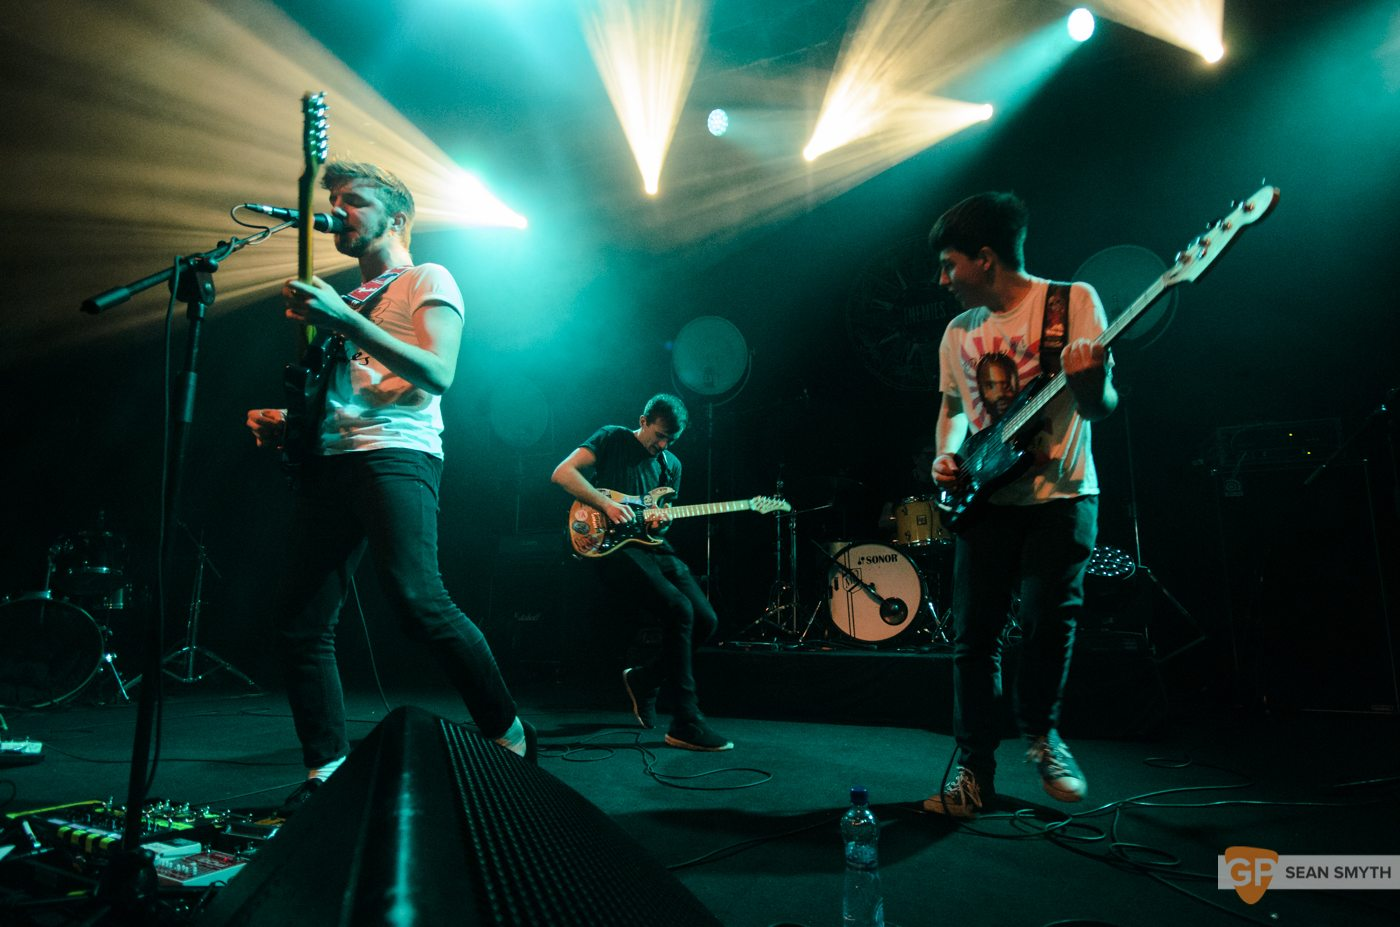 Search Party Animal at Vicar Street by Sean Smyth (18-12-16) (5 of 5)